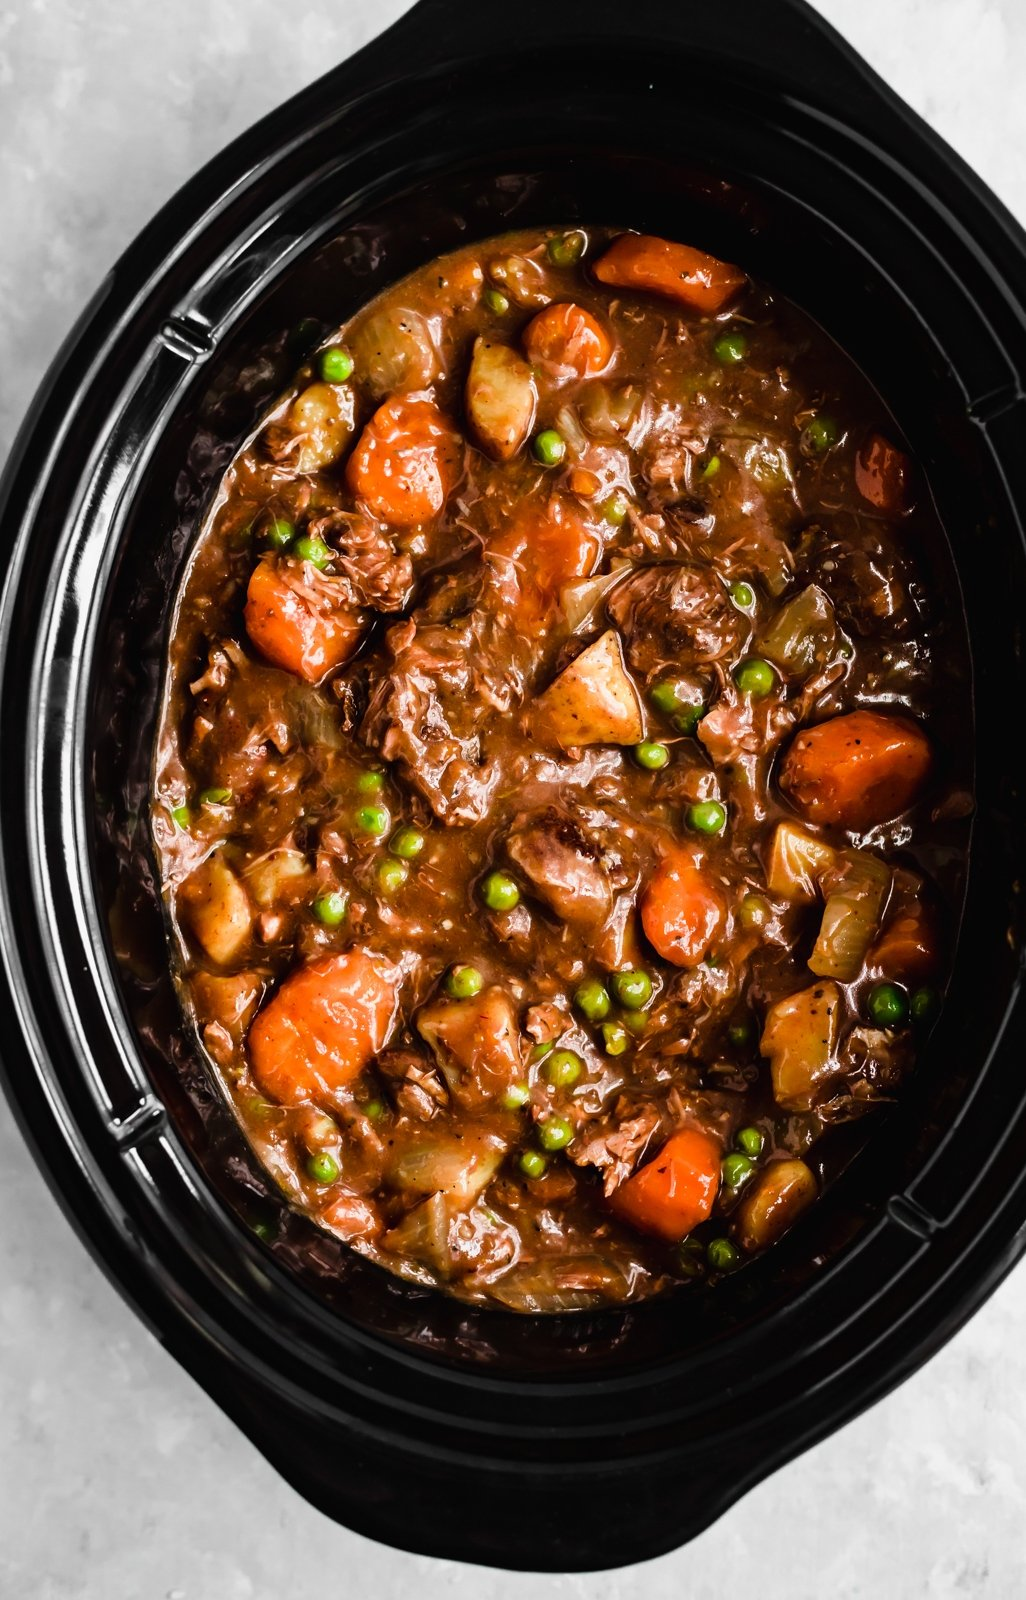 beef stew in the slow cooker